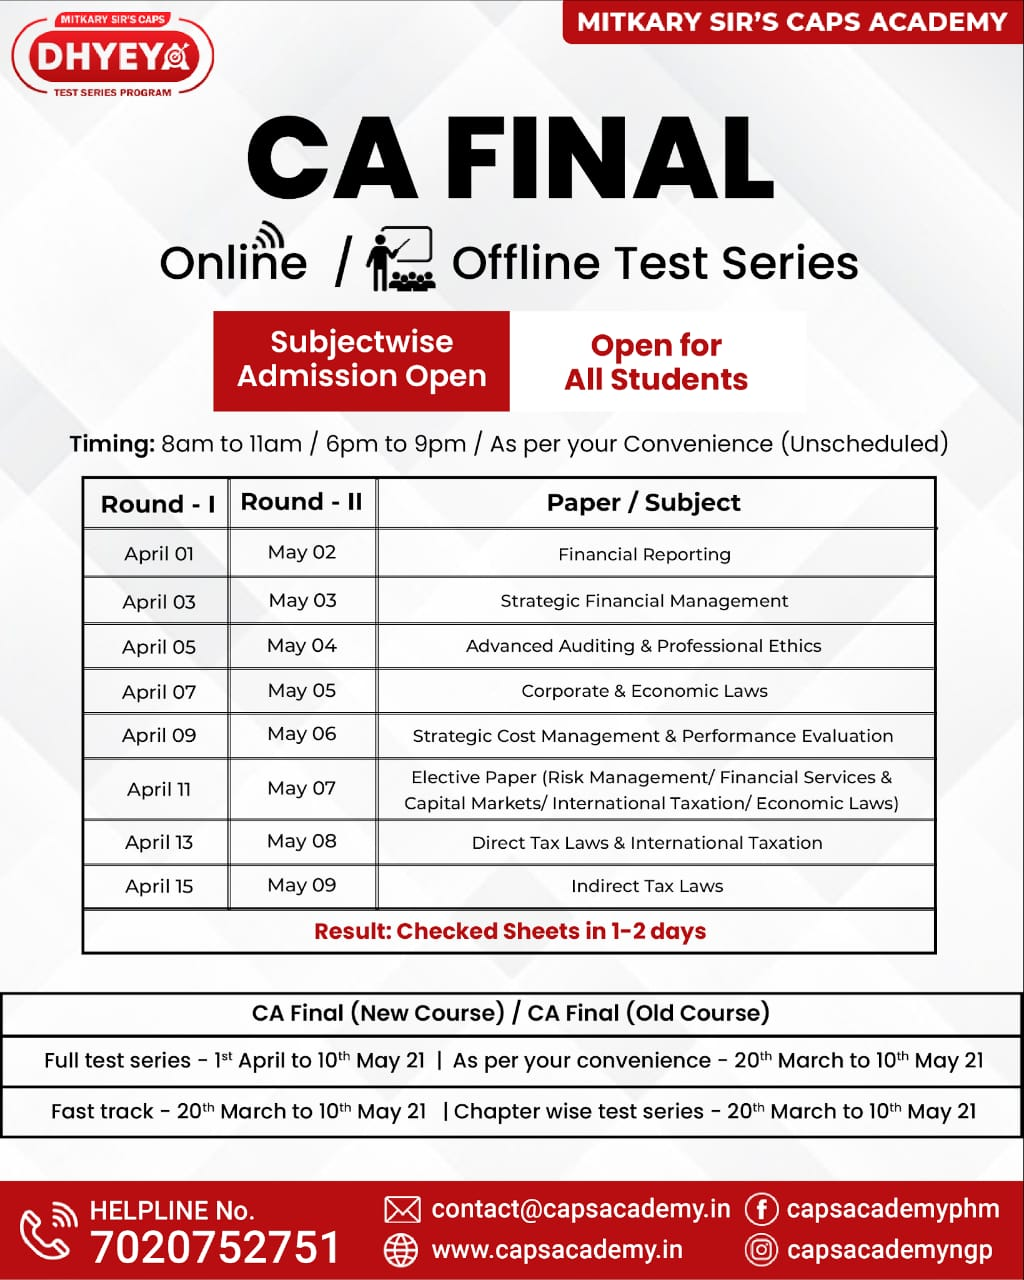 CA Final Test Series Time Table